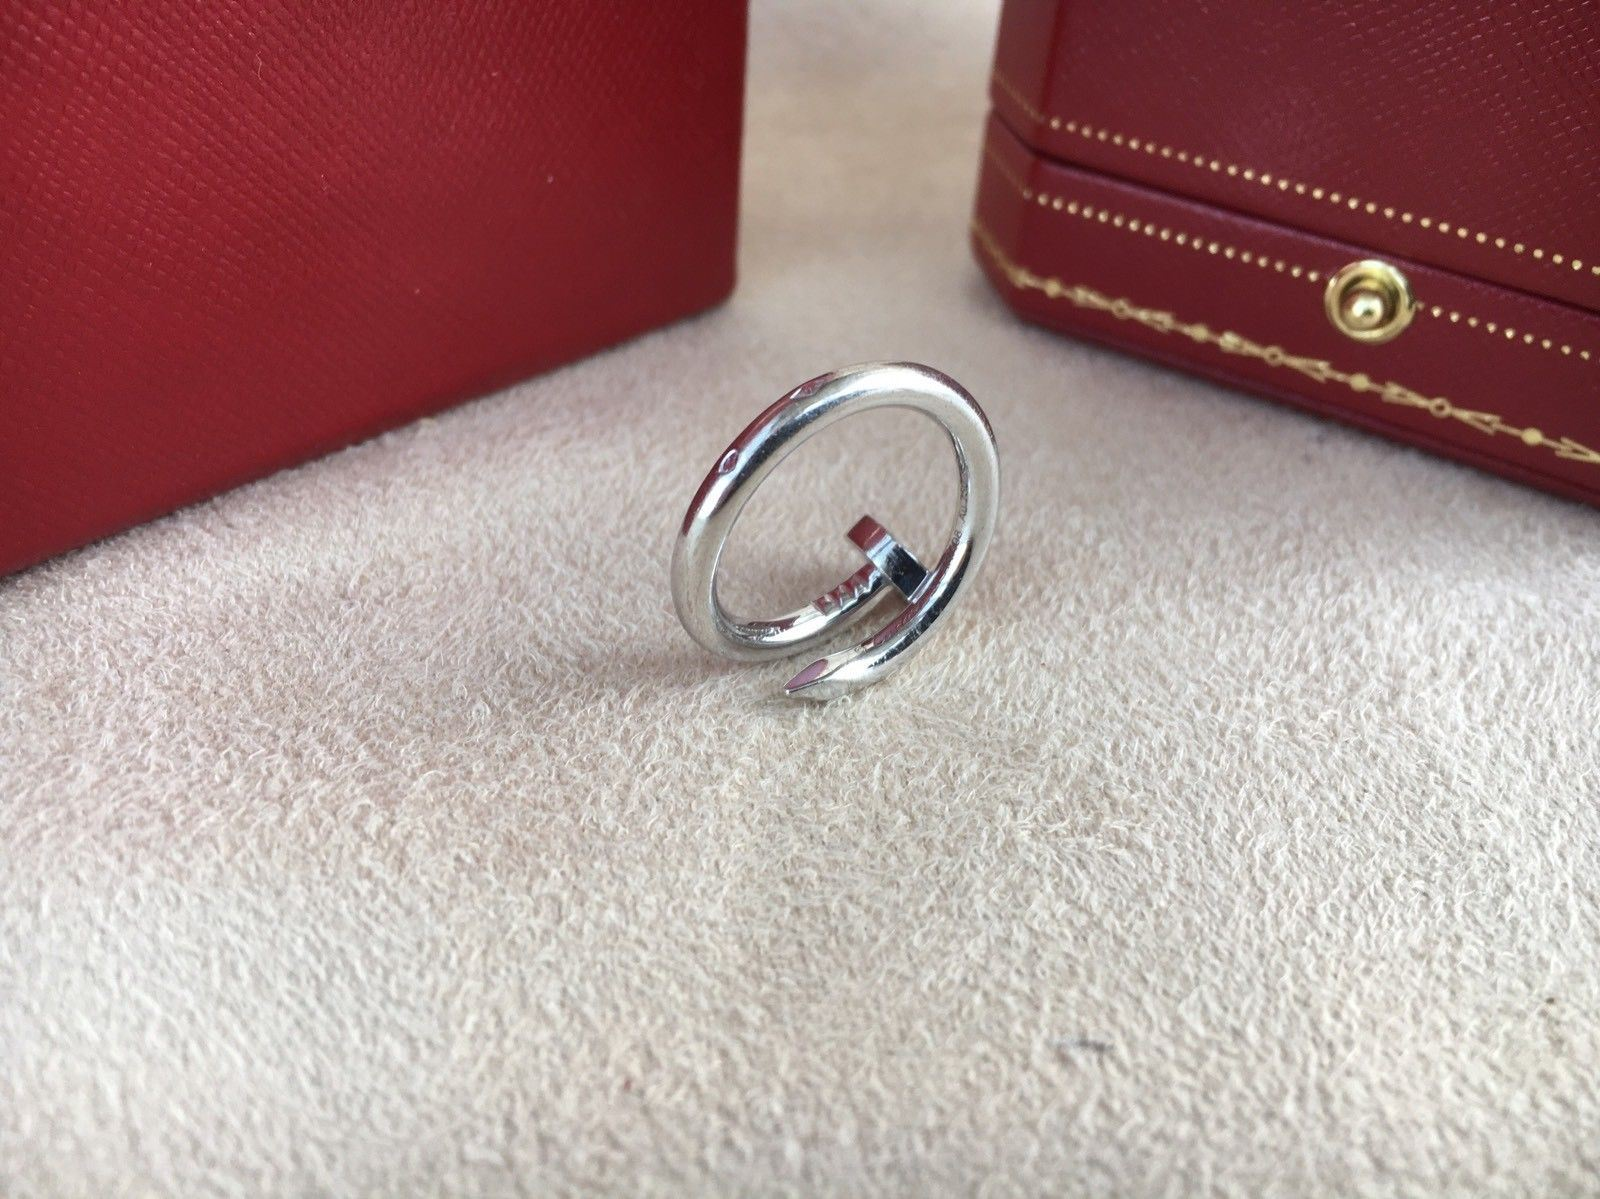 5af37920b65ae Details about Cartier Juste Un Clou Ring White Gold Size 51 (US 5.75)